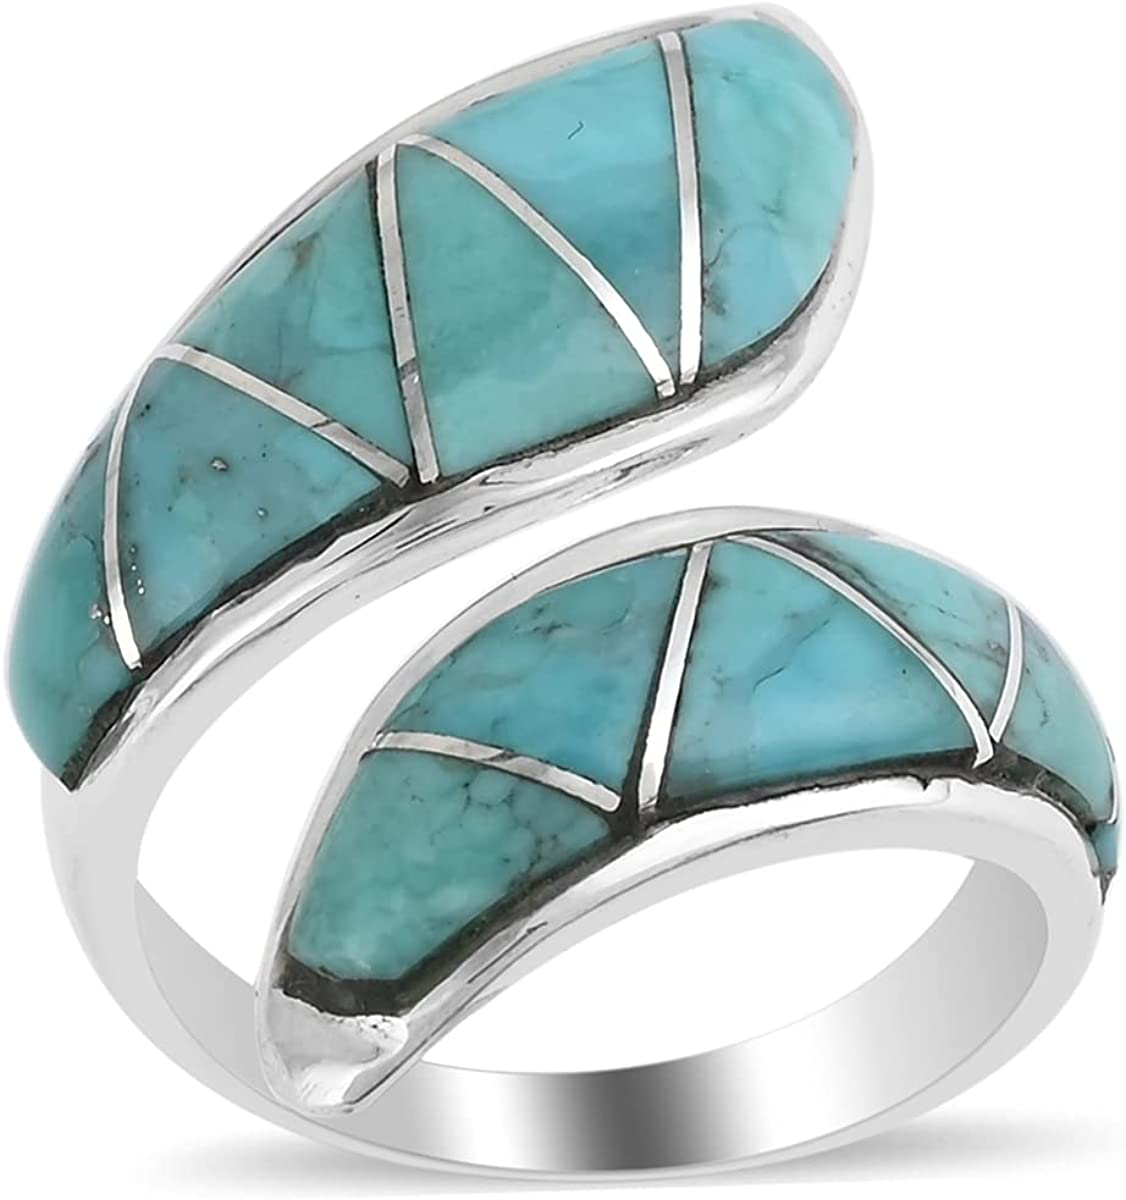 Shop LC Santa Fe Style 925 Gorgeous Open Sterling S Ring Turquoise Silver 70% OFF Outlet